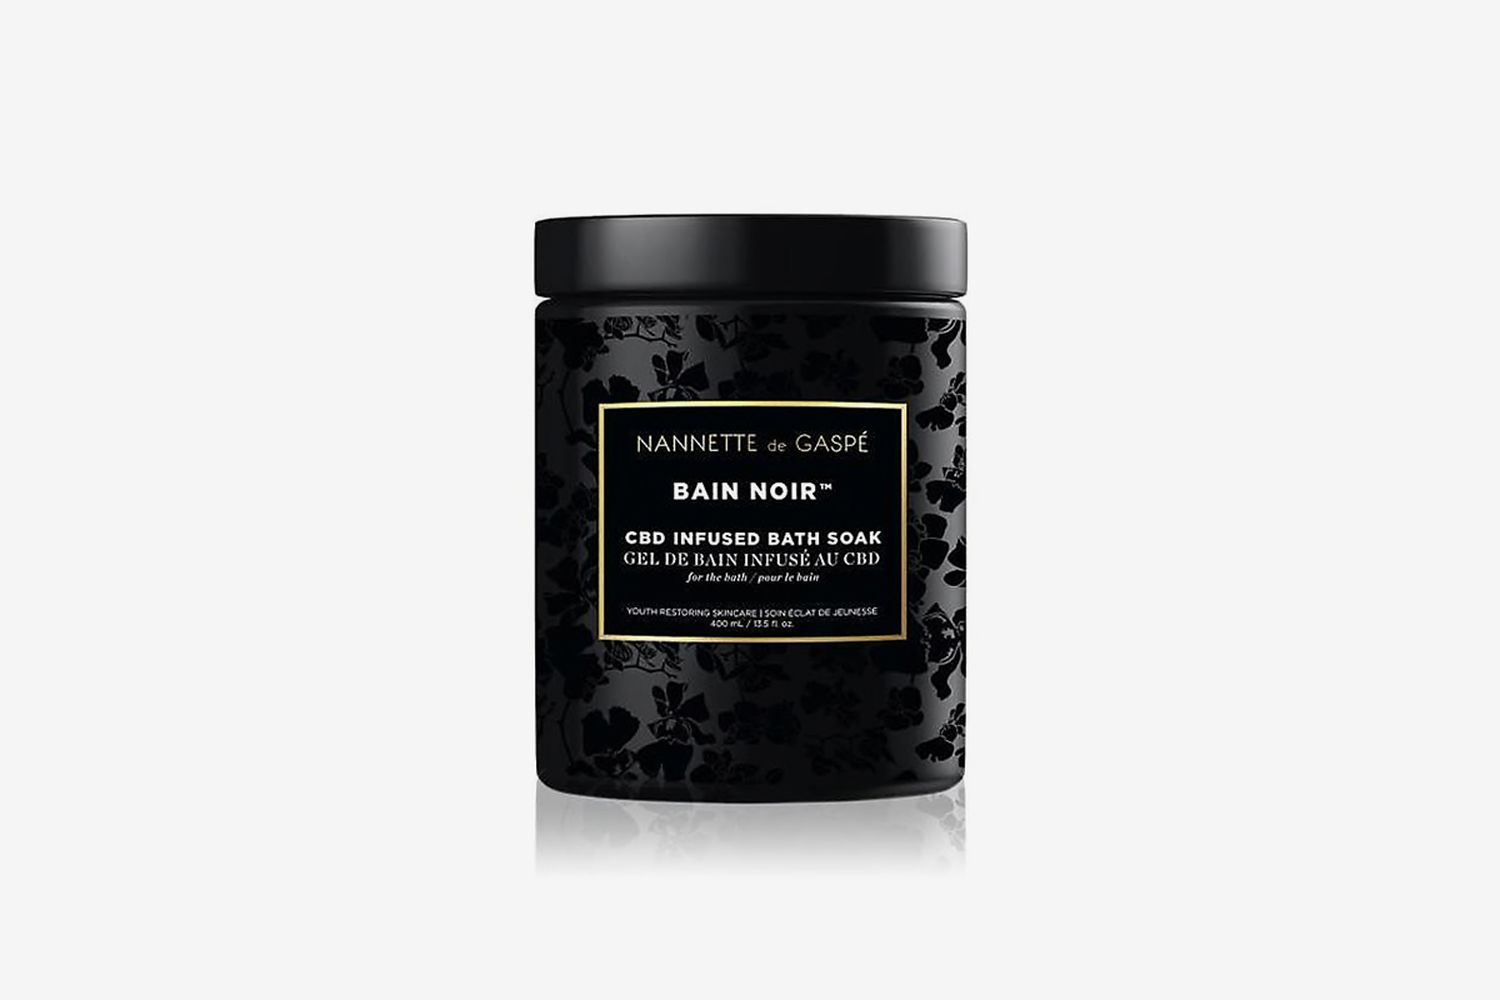 Bain Noir CBD Infused Bath Soak